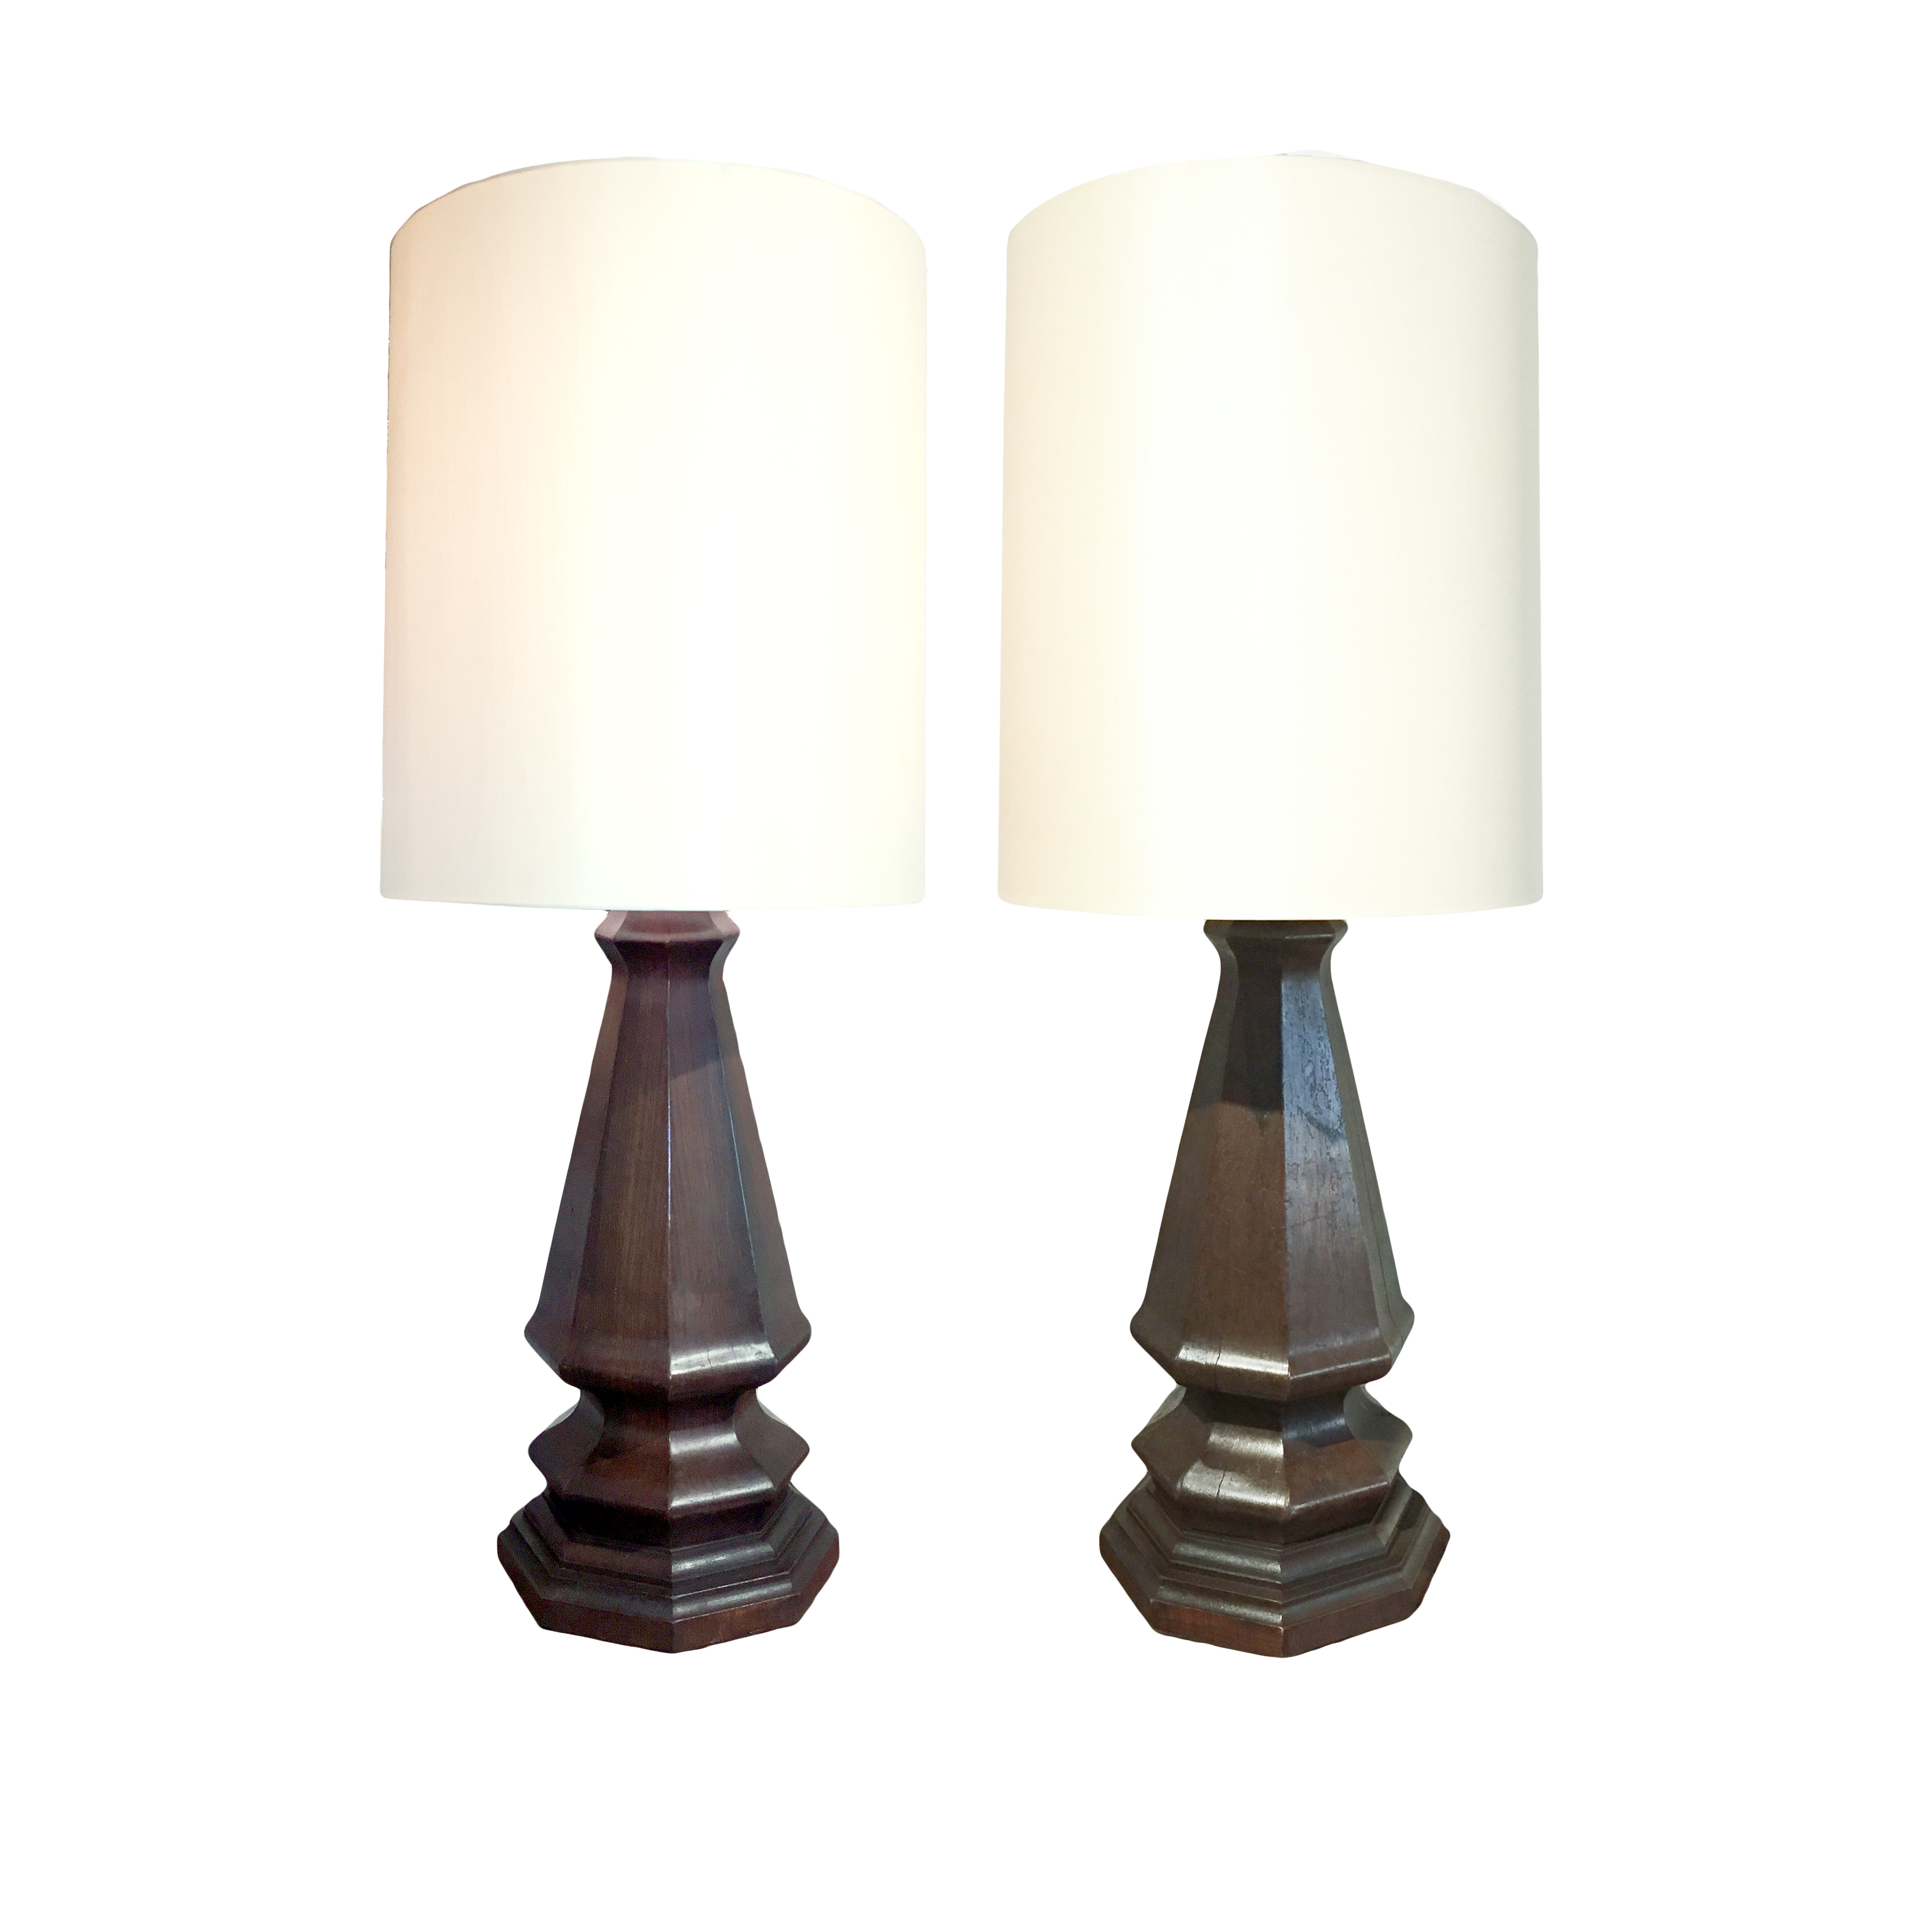 Pair Of Large Scale Wooden Table Lamps, English Circa 1900